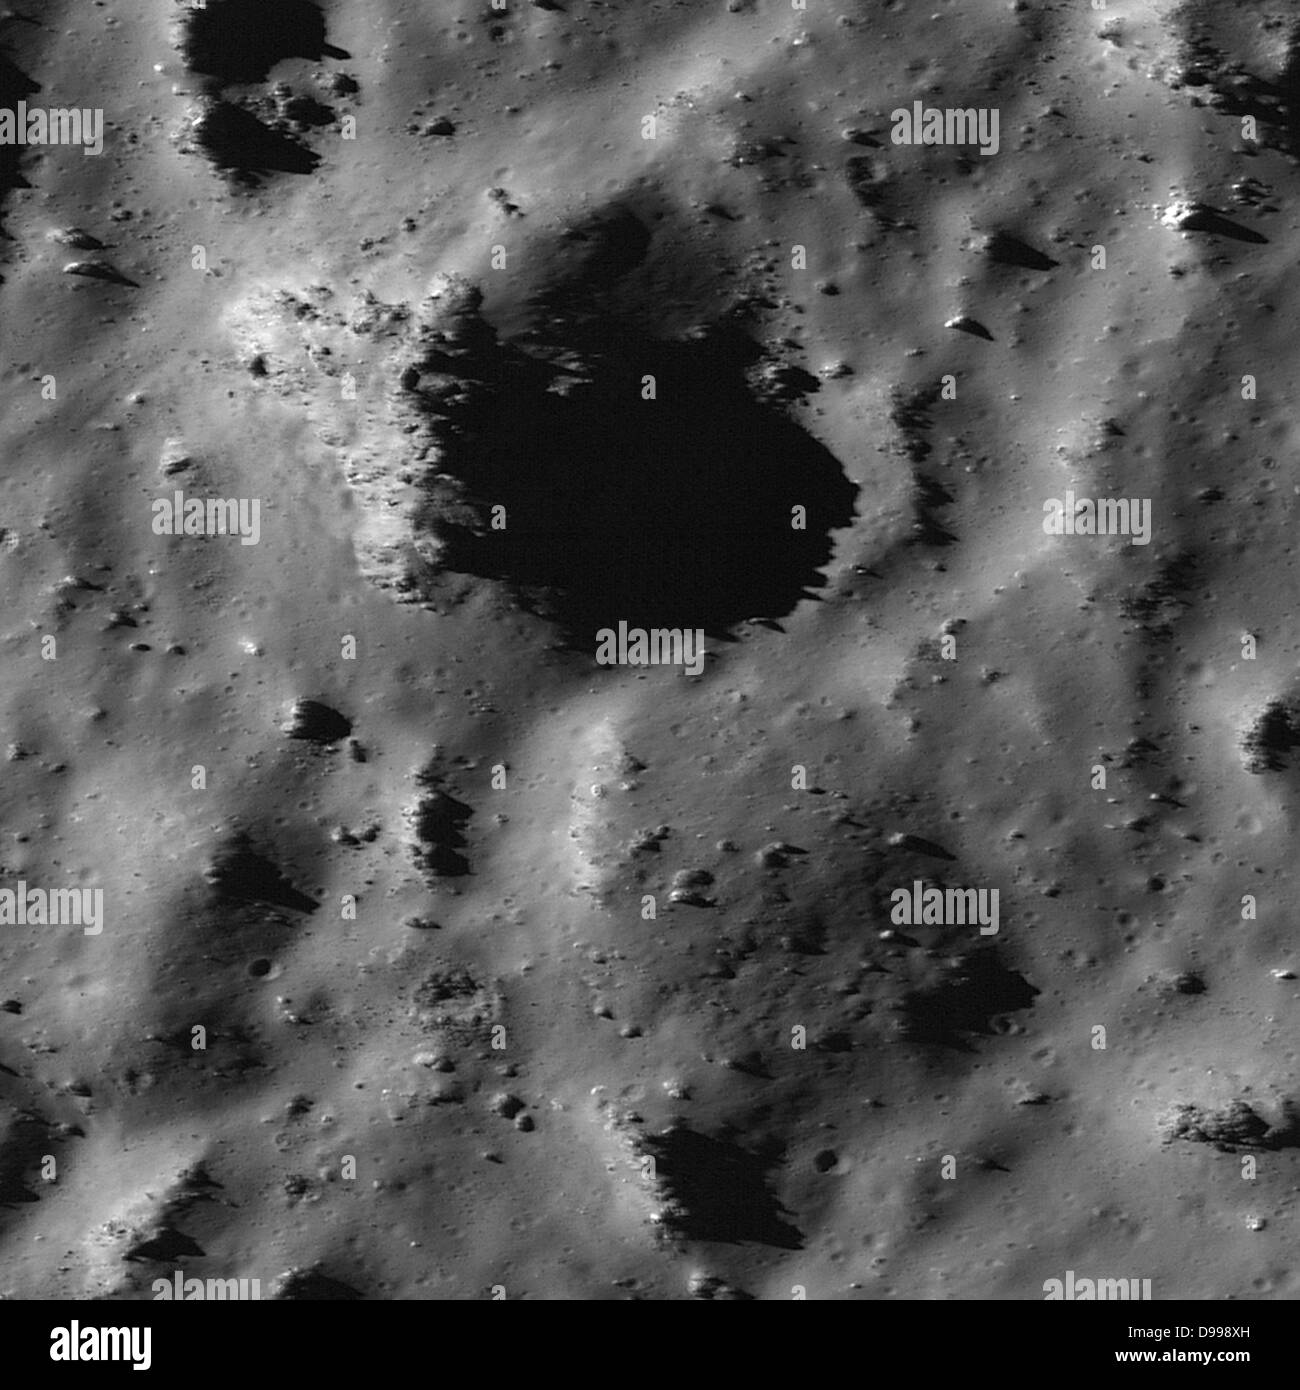 Depressions and positive relief features in Tycho crater were caused by a complex mixture of granular material and - Stock Image